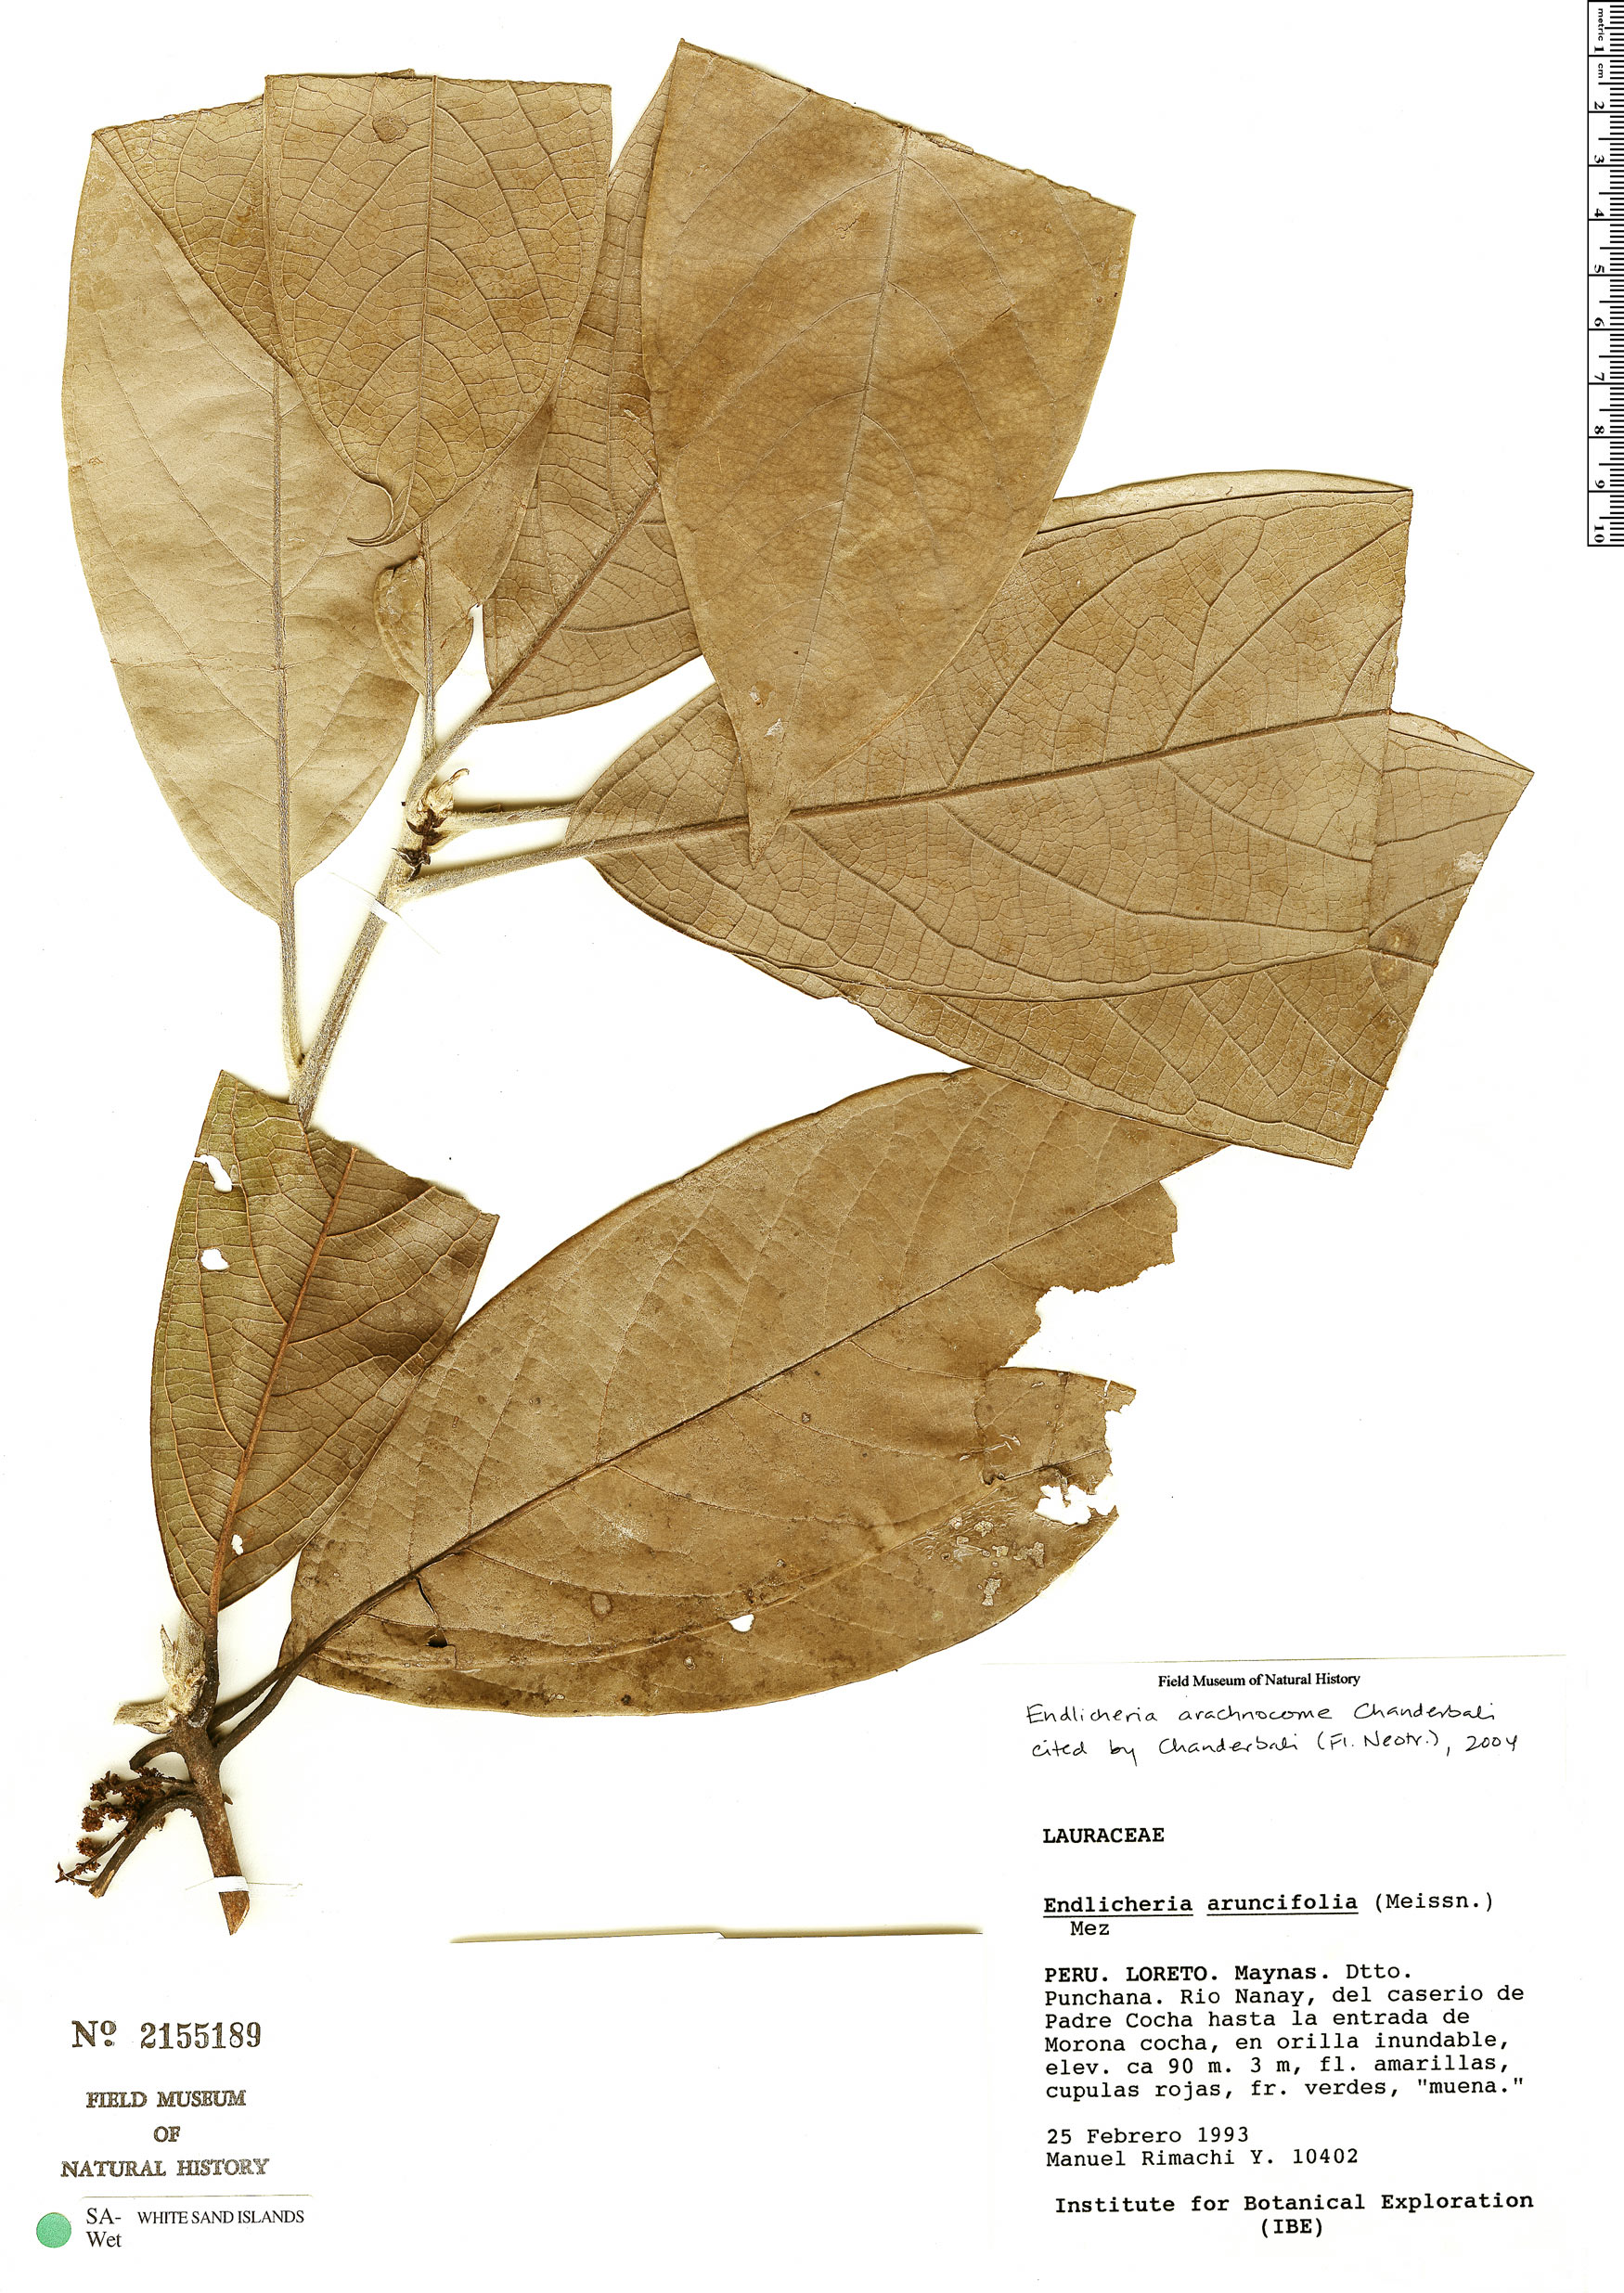 Specimen: Endlicheria arachnocome